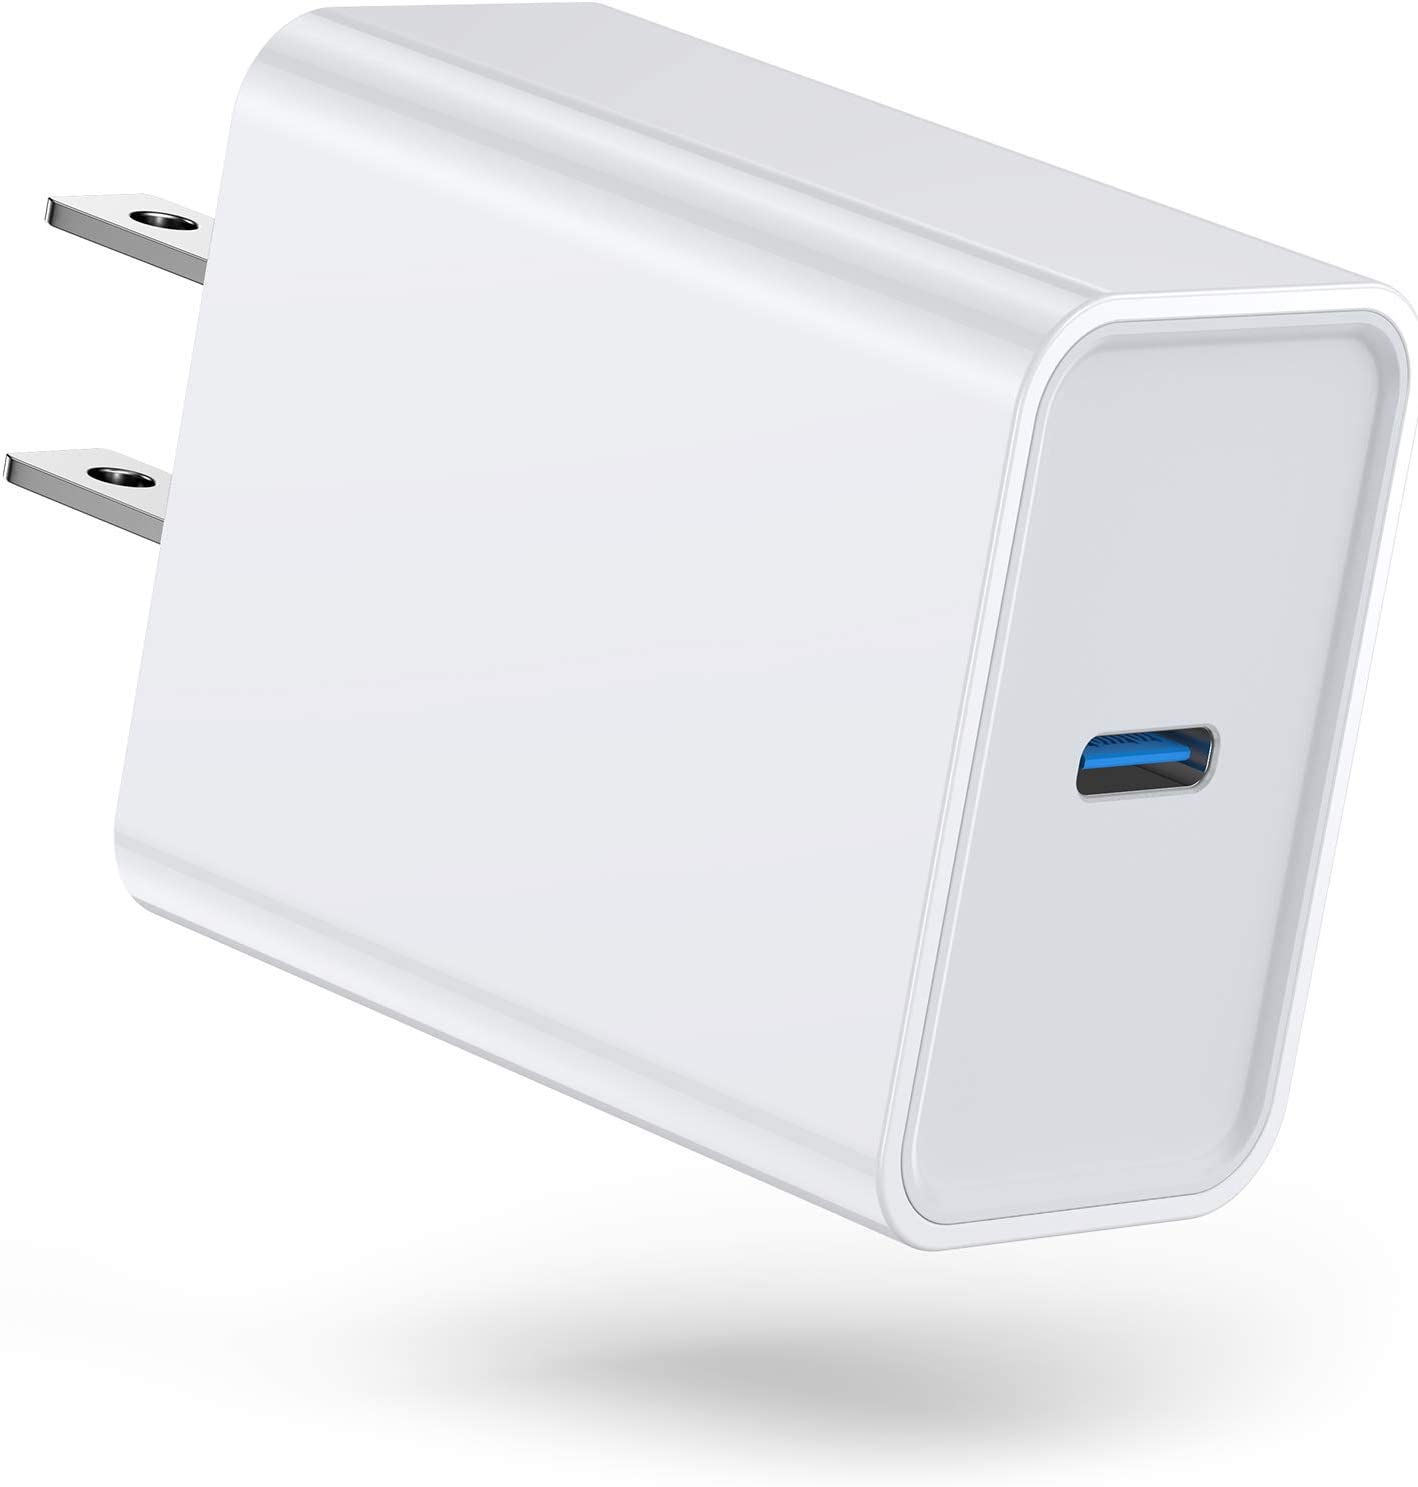 Upgarded USB C Fast Charger, 20W Power Delivery PD 3.0 Charger Block Type C USB Plug iPhone Cube Adapter for iPhone 12 11 Pro Max Xs Max XR X 8 Plus iPad Pro AirPods Pro Google Pixel 3/2/XL Samsung